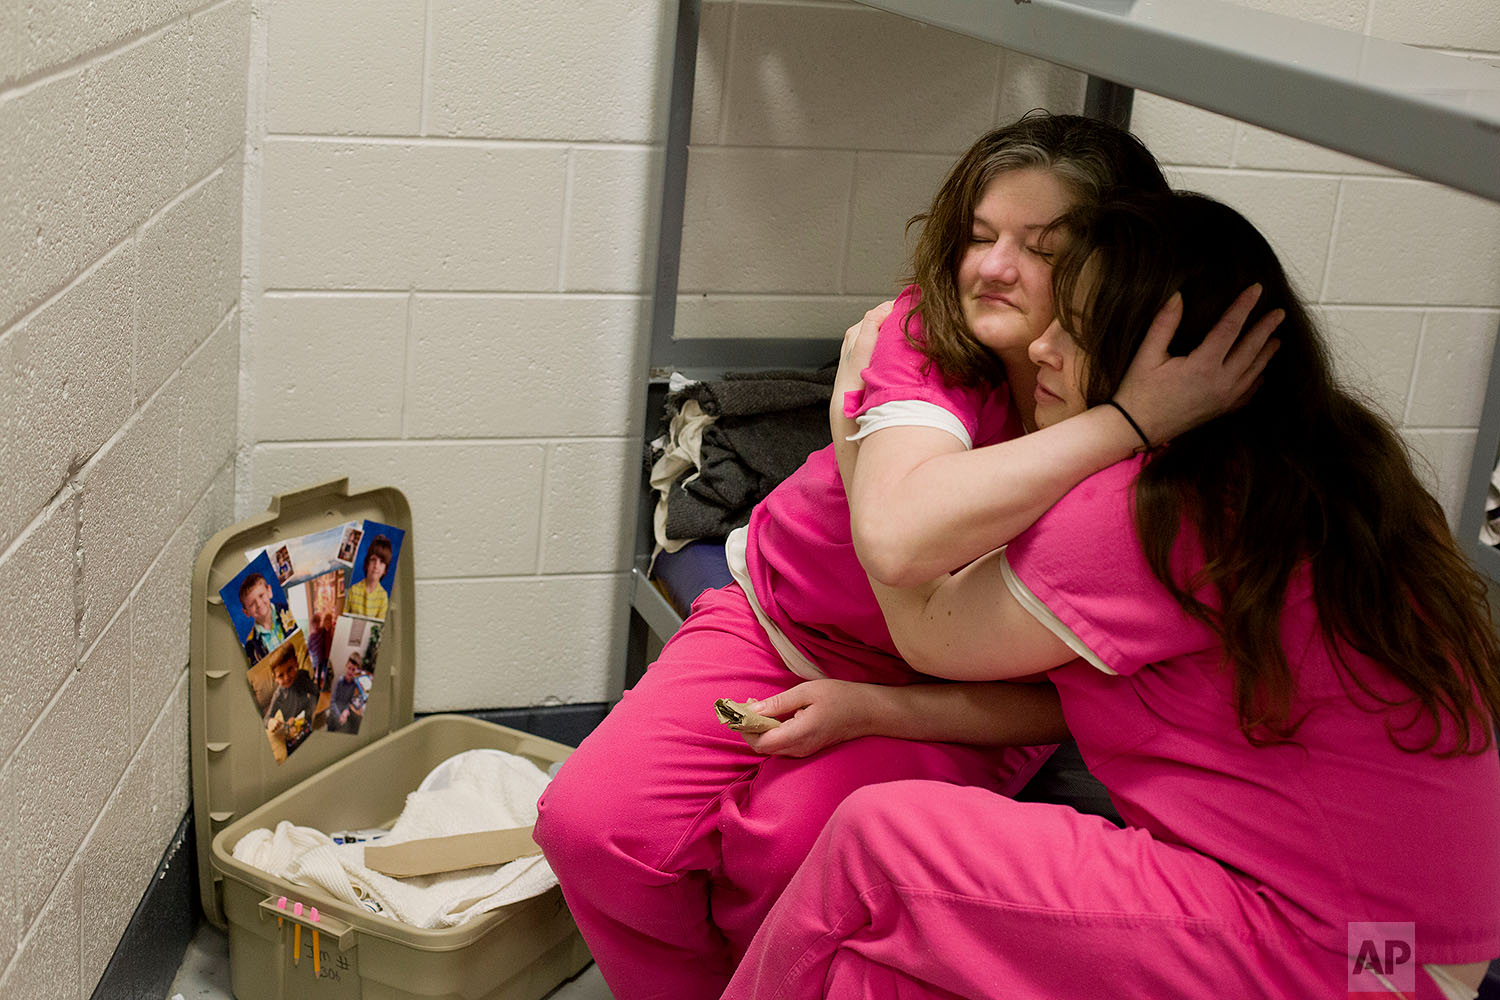 Crystal French, left, is comforted by cellmate Krystle Sweat, at the Campbell County Jail in Jacksboro, Tenn., Tuesday, March 30, 2018, after French was denied parole the previous day. She won't be eligible again for another year. (AP Photo/David Goldman)